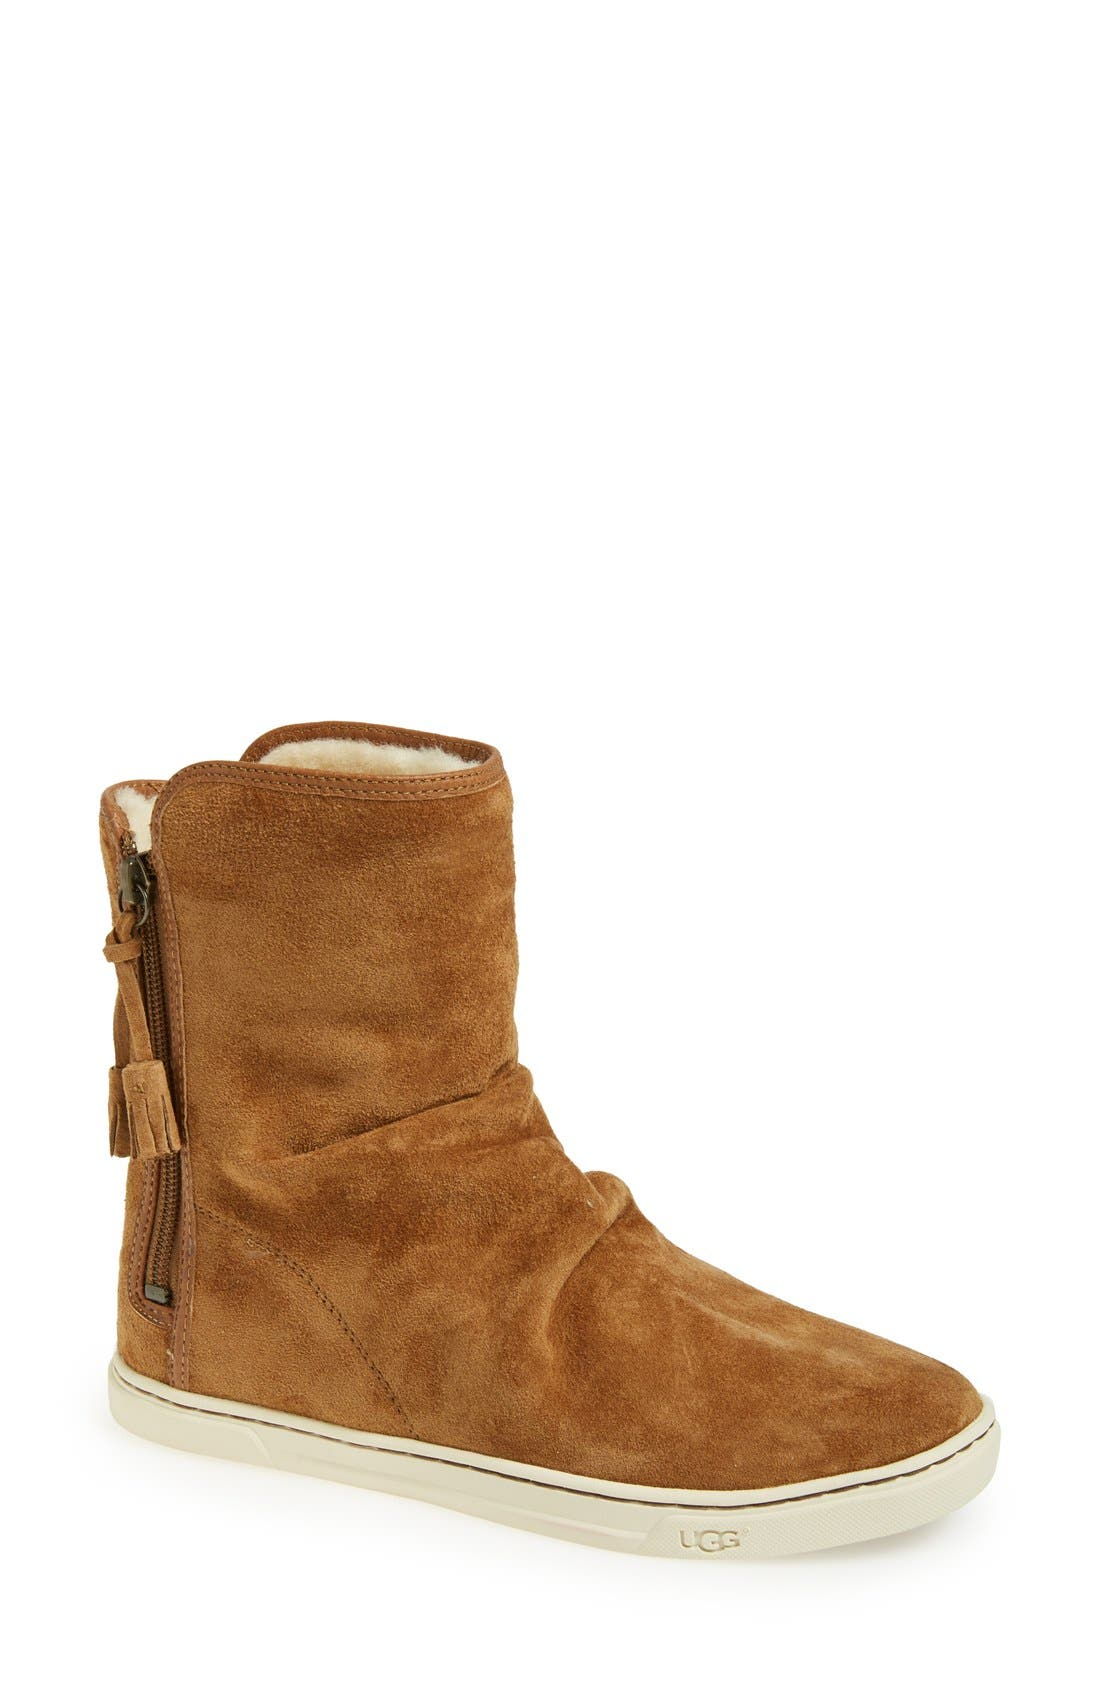 Australia 'Becky' Water Resistant Suede Boot,                             Main thumbnail 2, color,